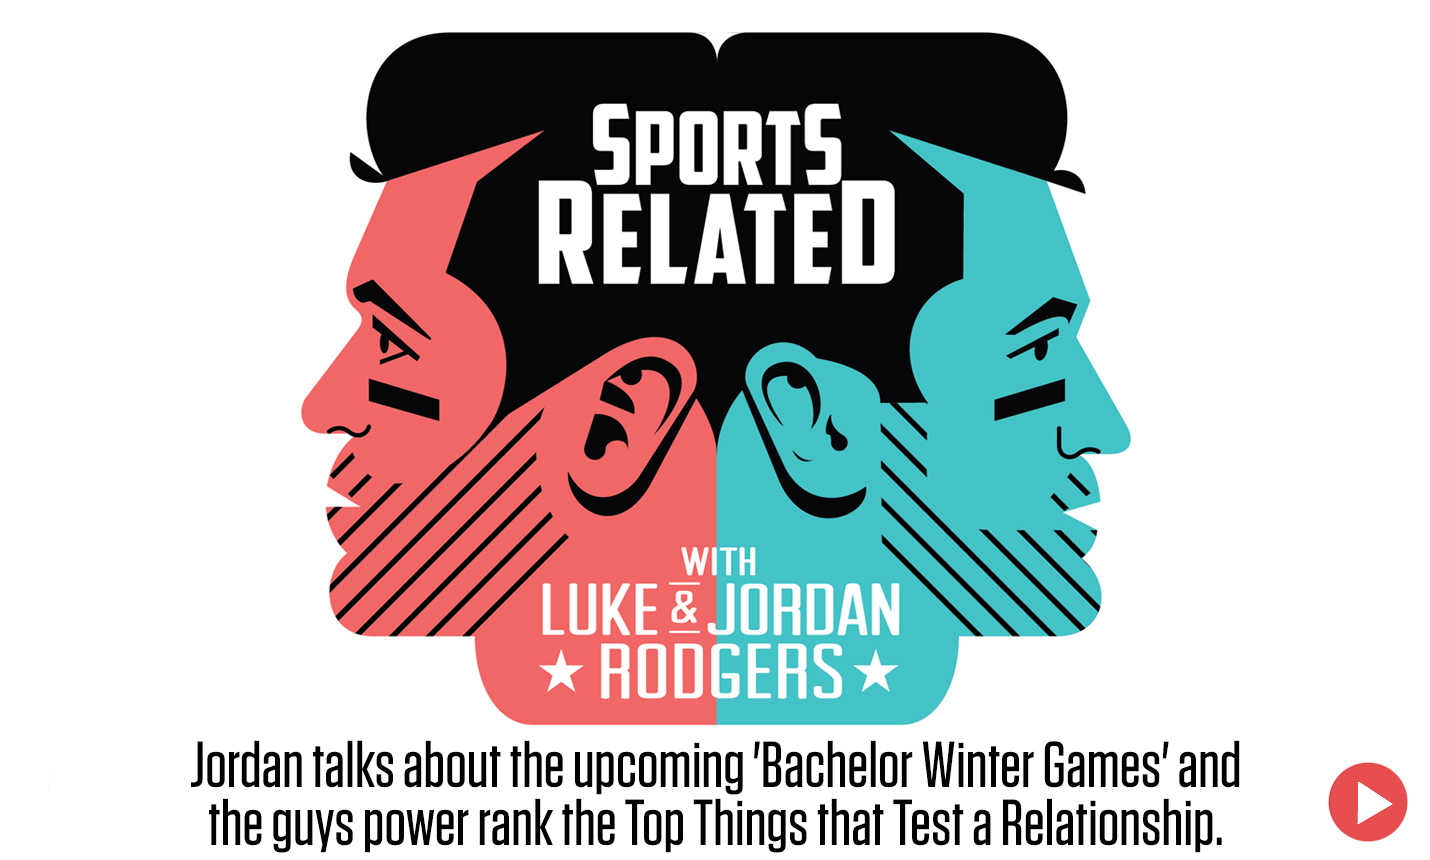 Sports Related with Luke and Jordan Rodgers